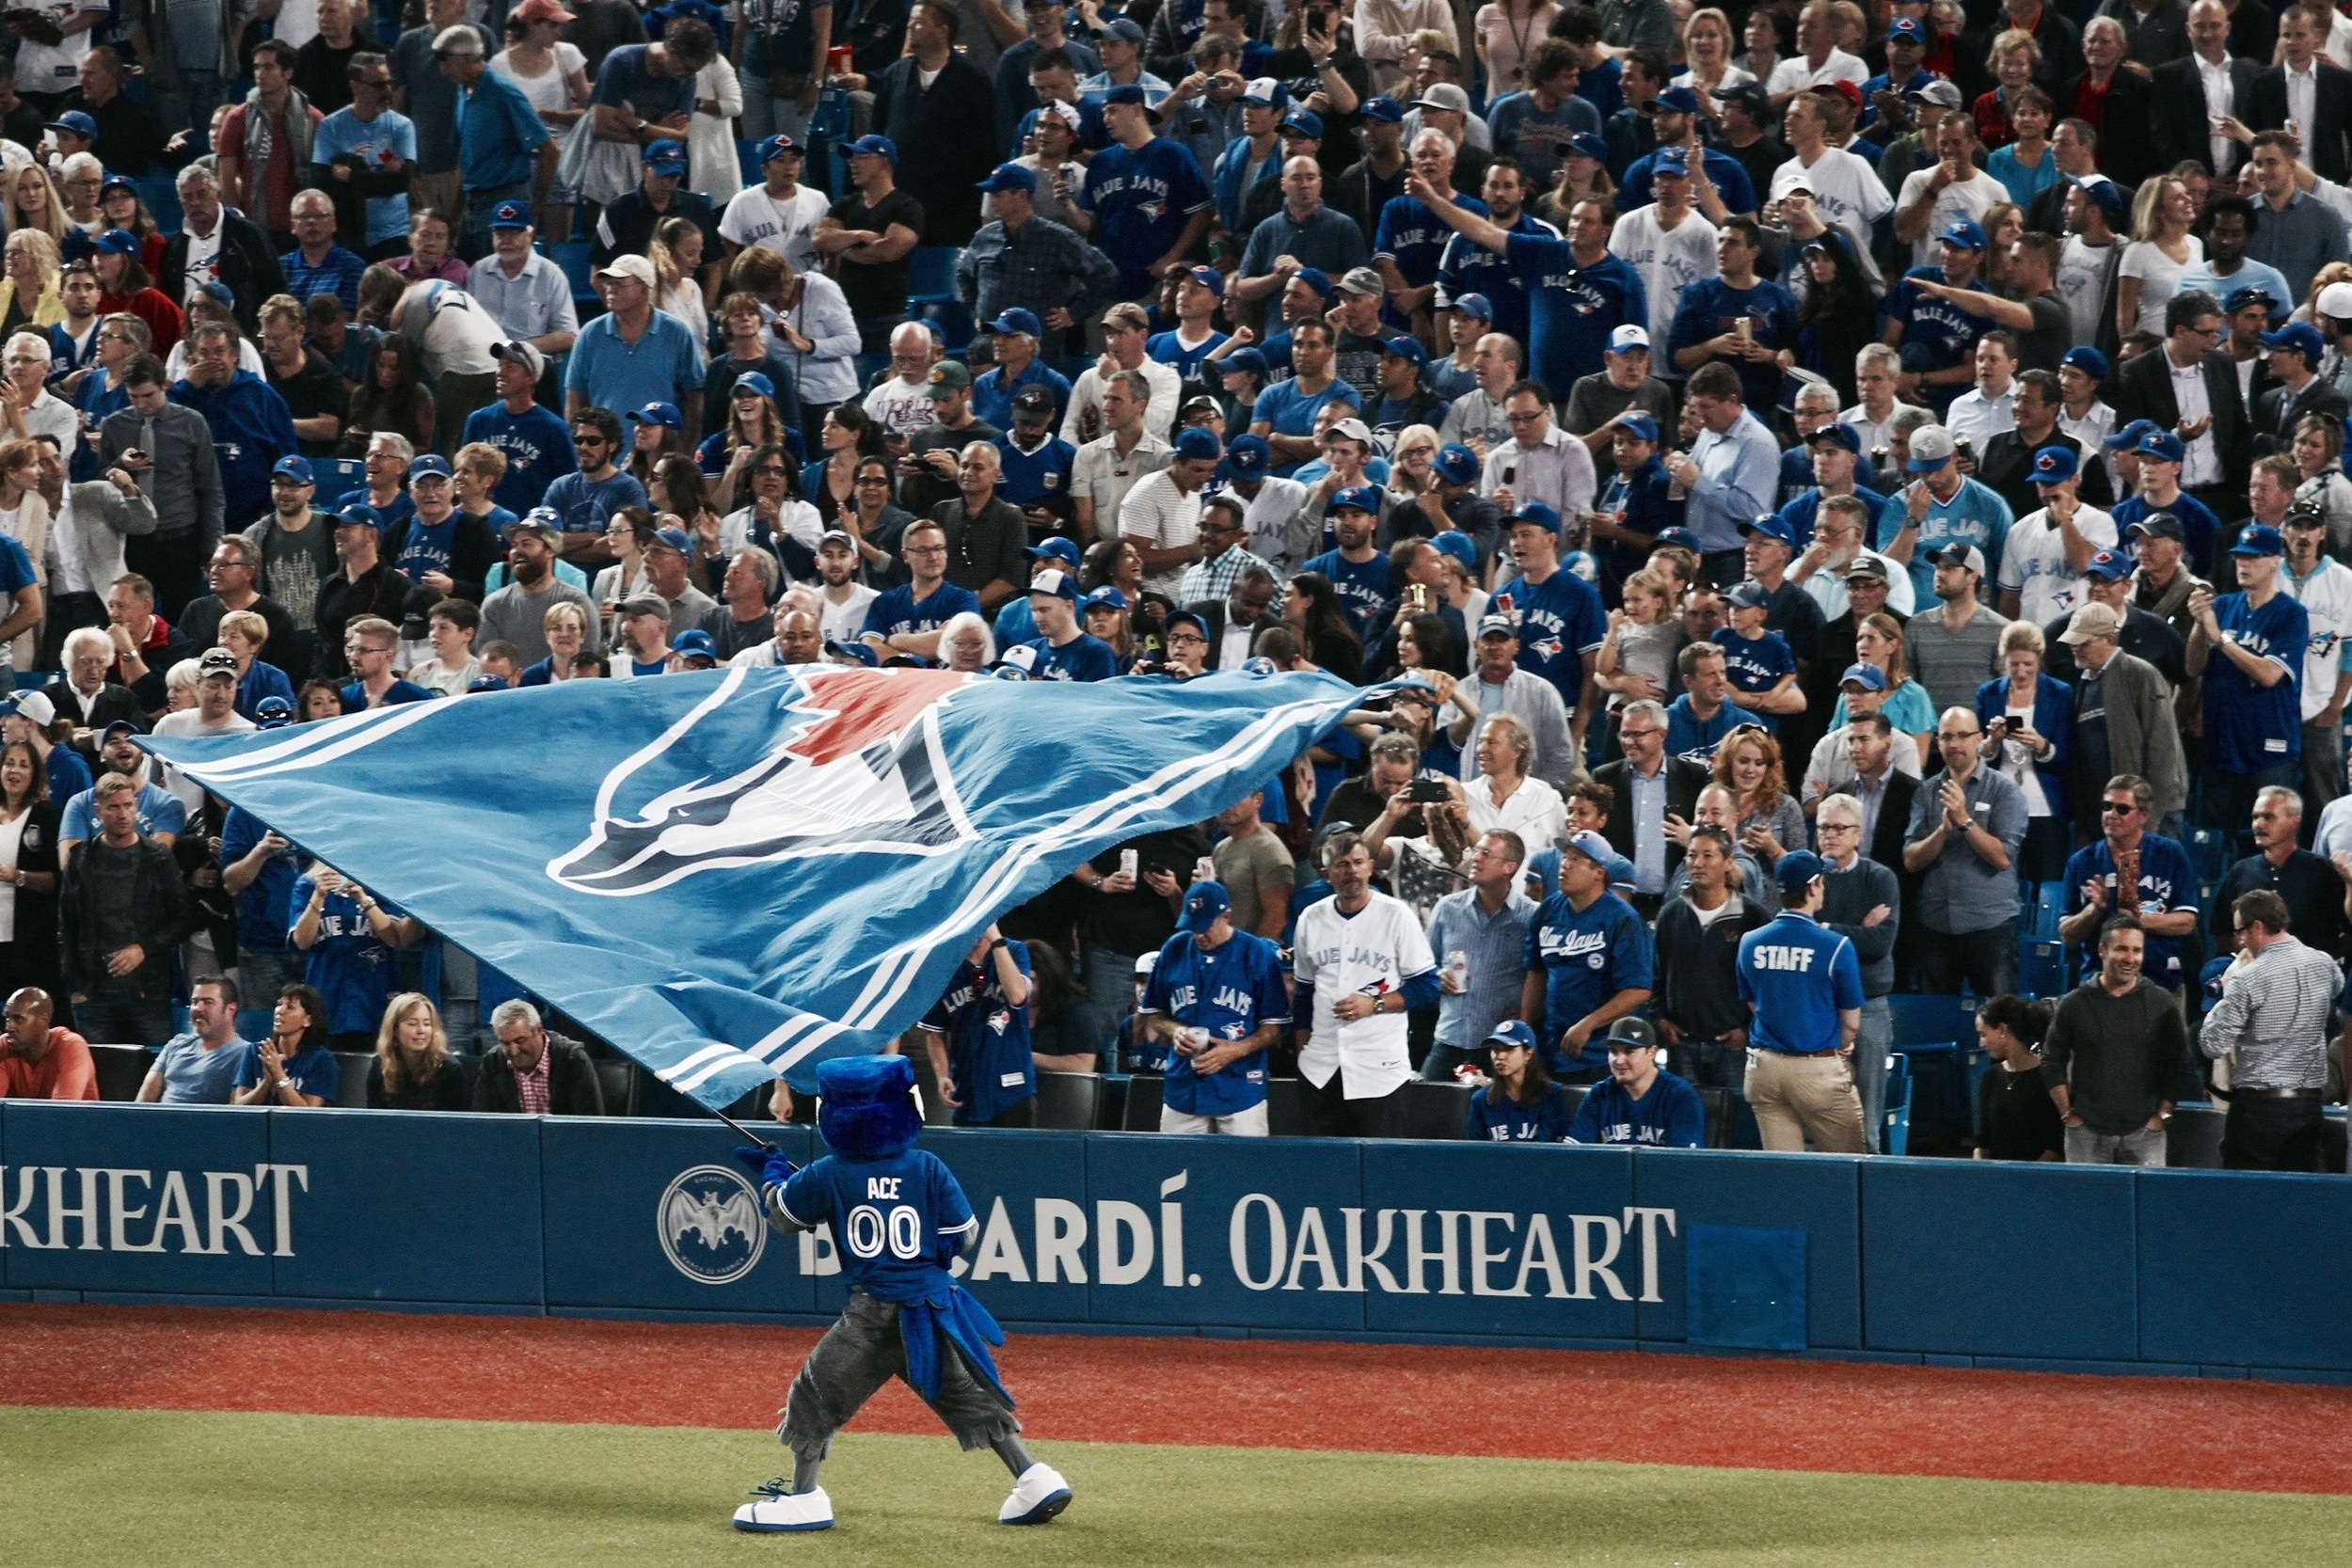 JAYS FANS ARE GEARING UP FOR THEIR FIRST POSTSEASON GAME IN 22 YEARS. BUT BEFORE THE FIRST PITCH IS THROWN ON THURSDAY, HERE'S A REMINDER OF JUST HOW FAR THIS TEAM HAS COME.(photo: JEREMY KING)